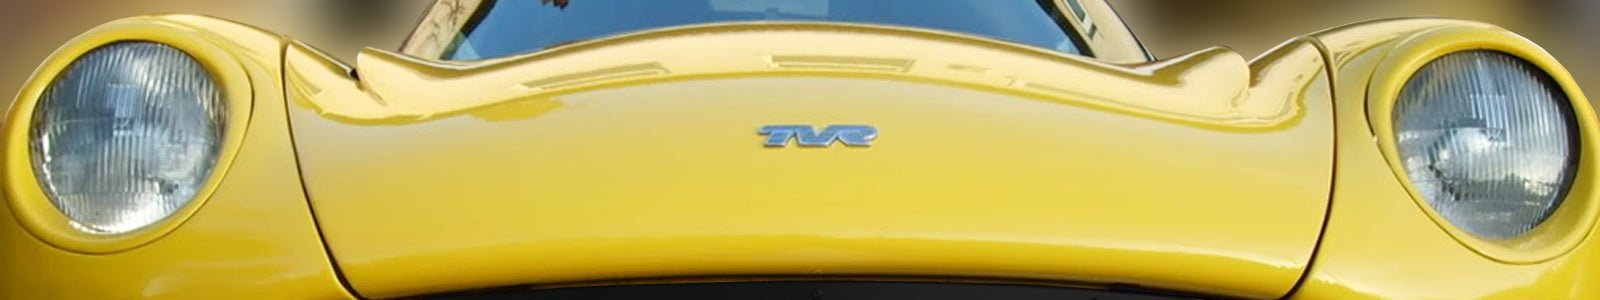 TVR Car Covers